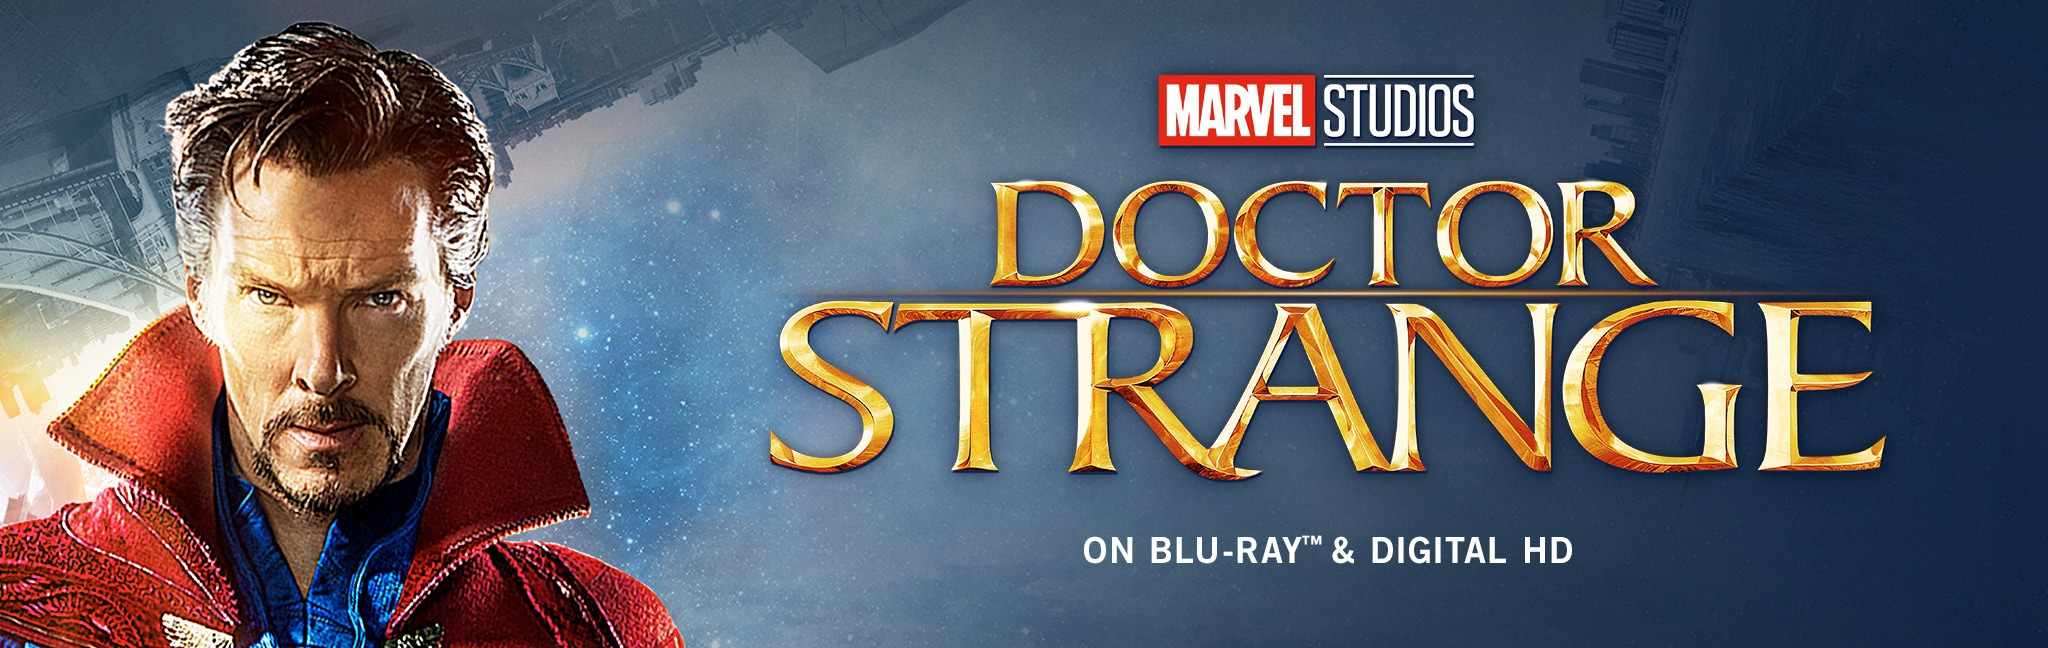 Dr Strange in on blu ray Feb 28. On Digital HD now